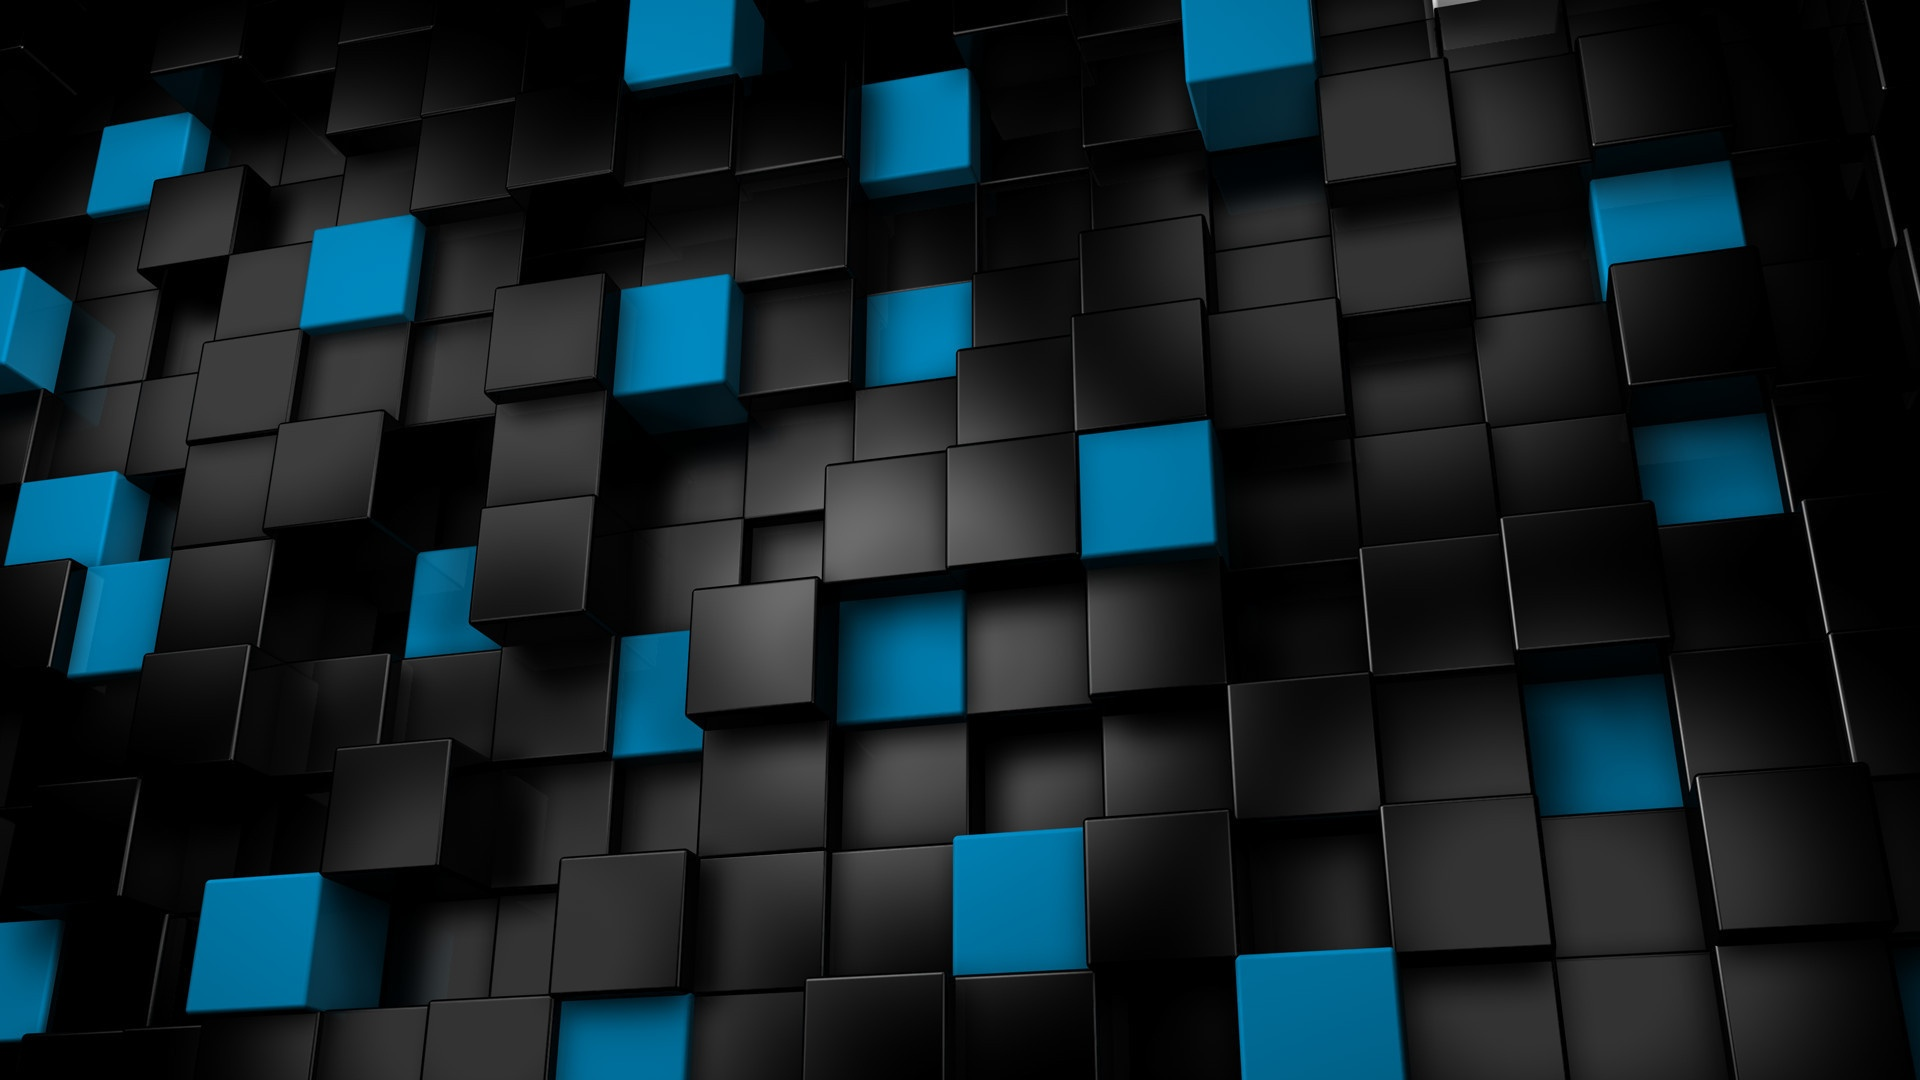 3d-black-cubes-backgrounds-wallpapers1